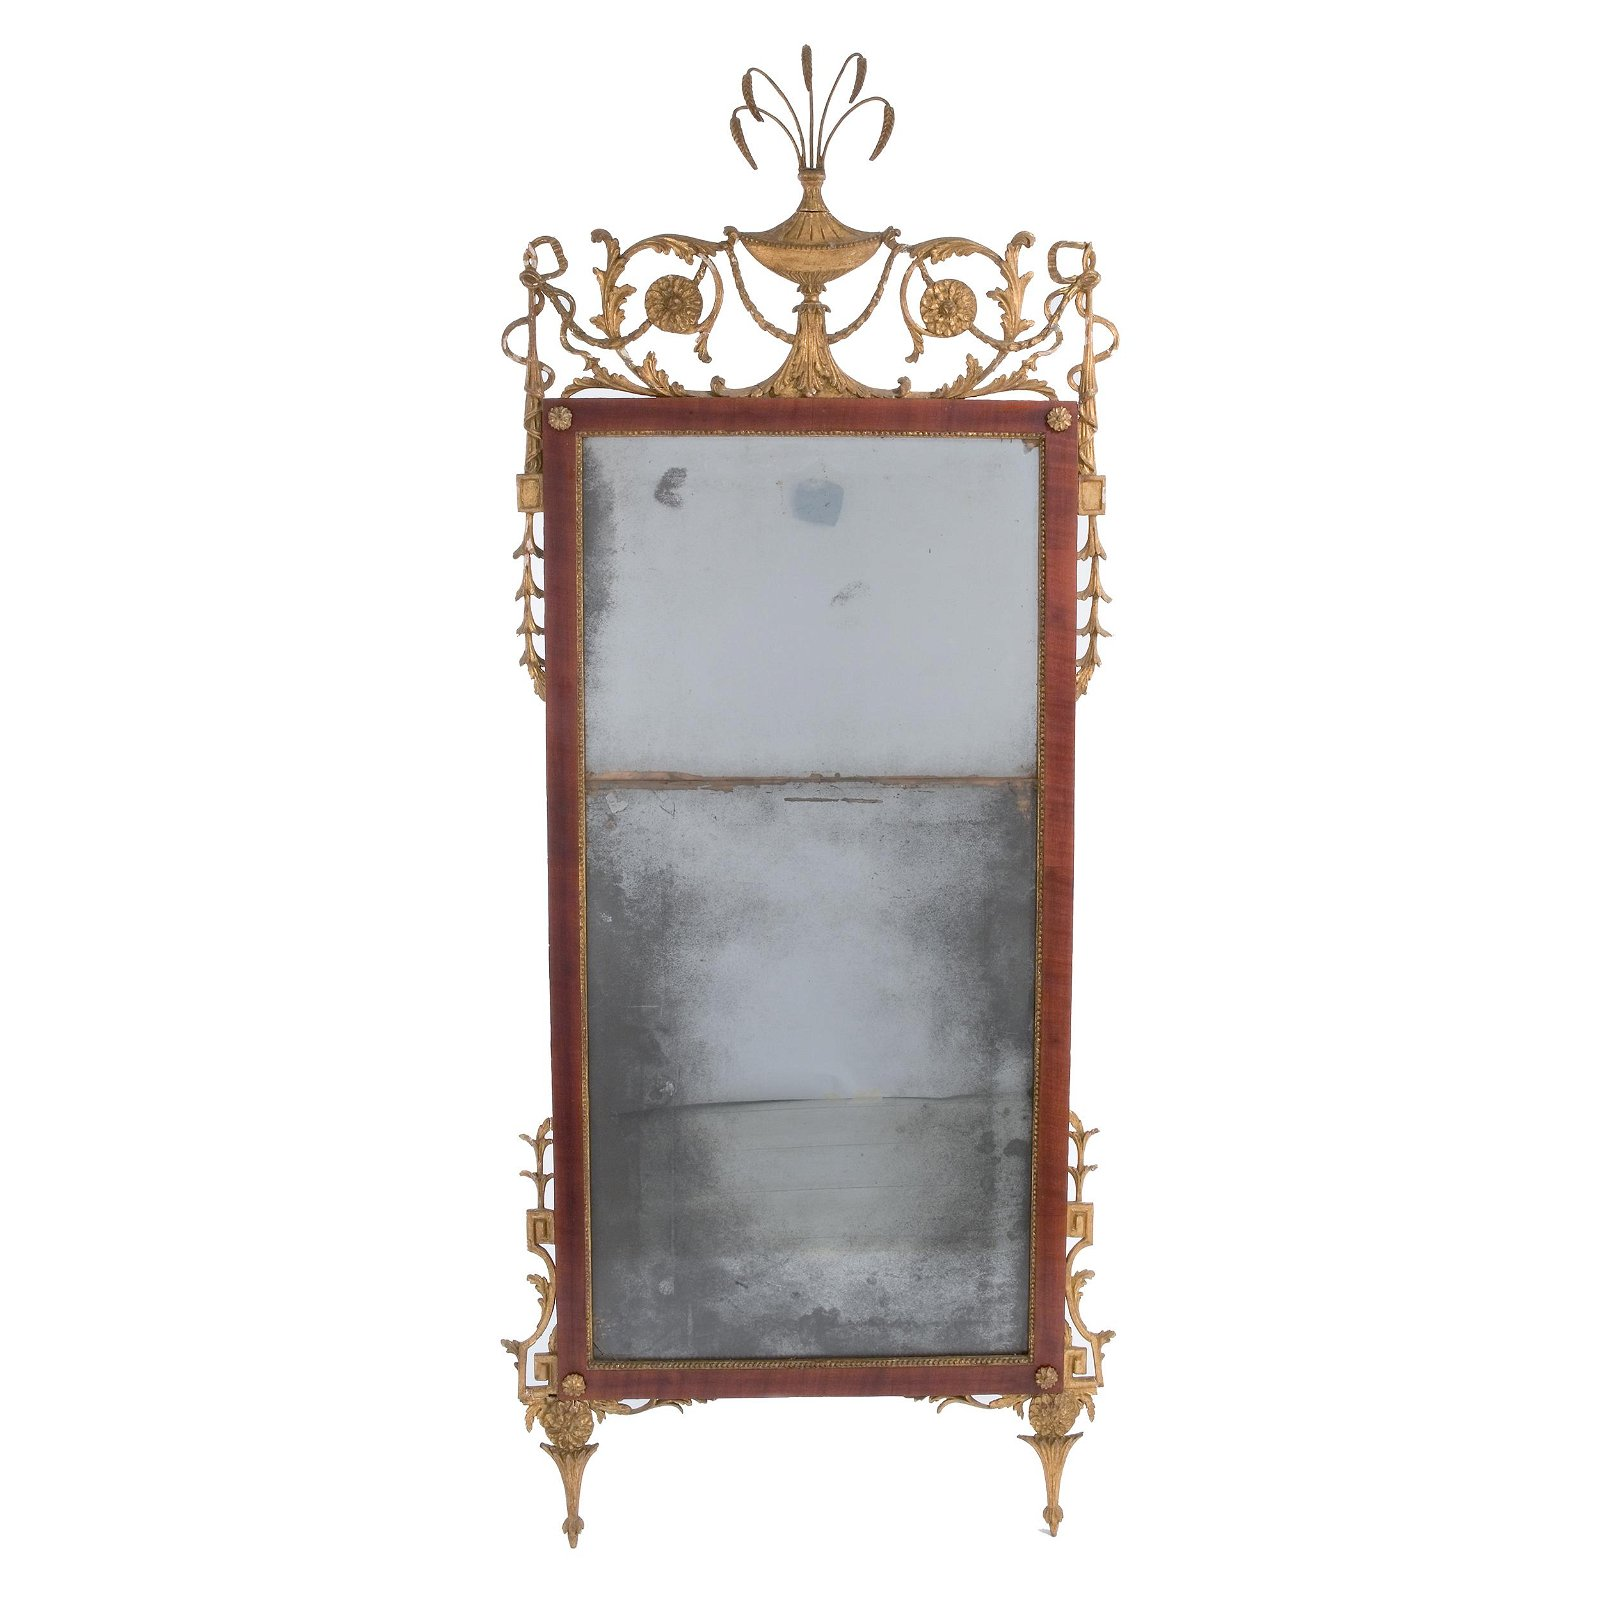 A Lucchese mahogany and gilt wood wall mirror